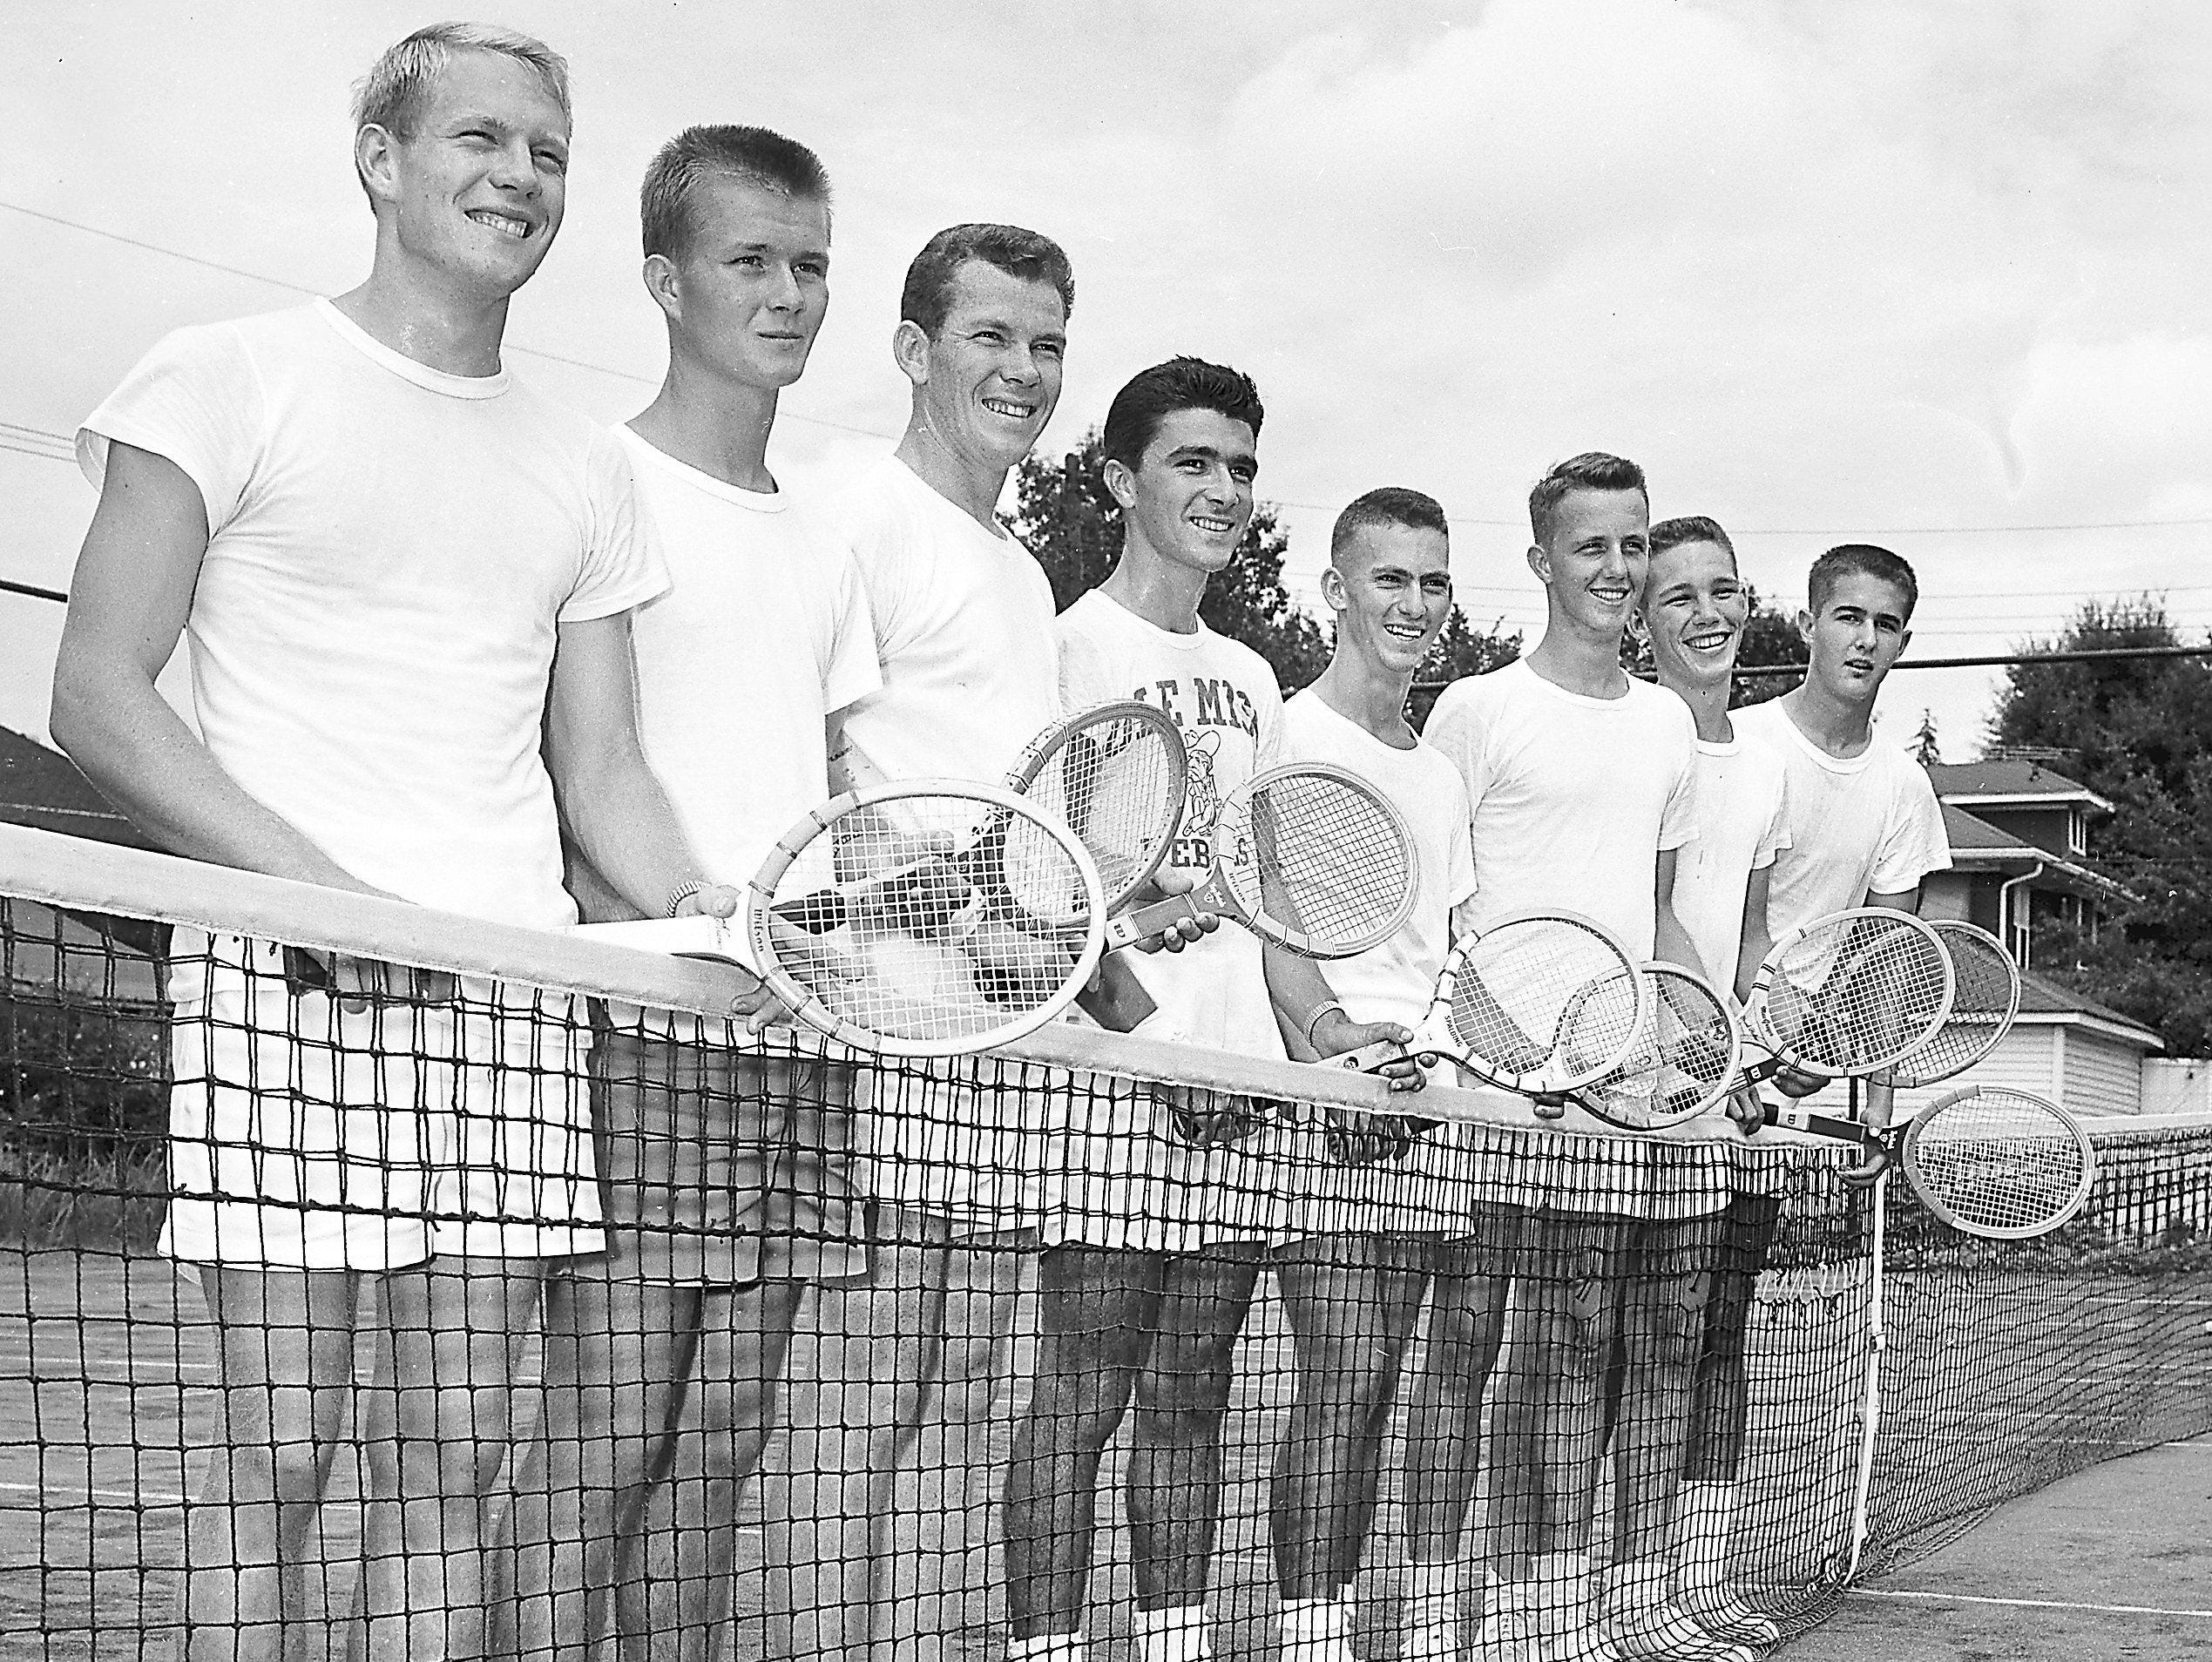 A strong field in the Mississippi Valley tennis tournament will come from Ole Miss. Entered in the meet to start on 12 Aug 1951 at Beauregard Park are, from left, Jack Milligan, Leighton Pettis, Clint Johnson, Howard Bishop, all of Oxford, Miss., Dick Briggs, Buddy Lomax, Meridian, Miss.; Tommy Eliott, Oxford, and Frank Quinn, McComb, Miss.